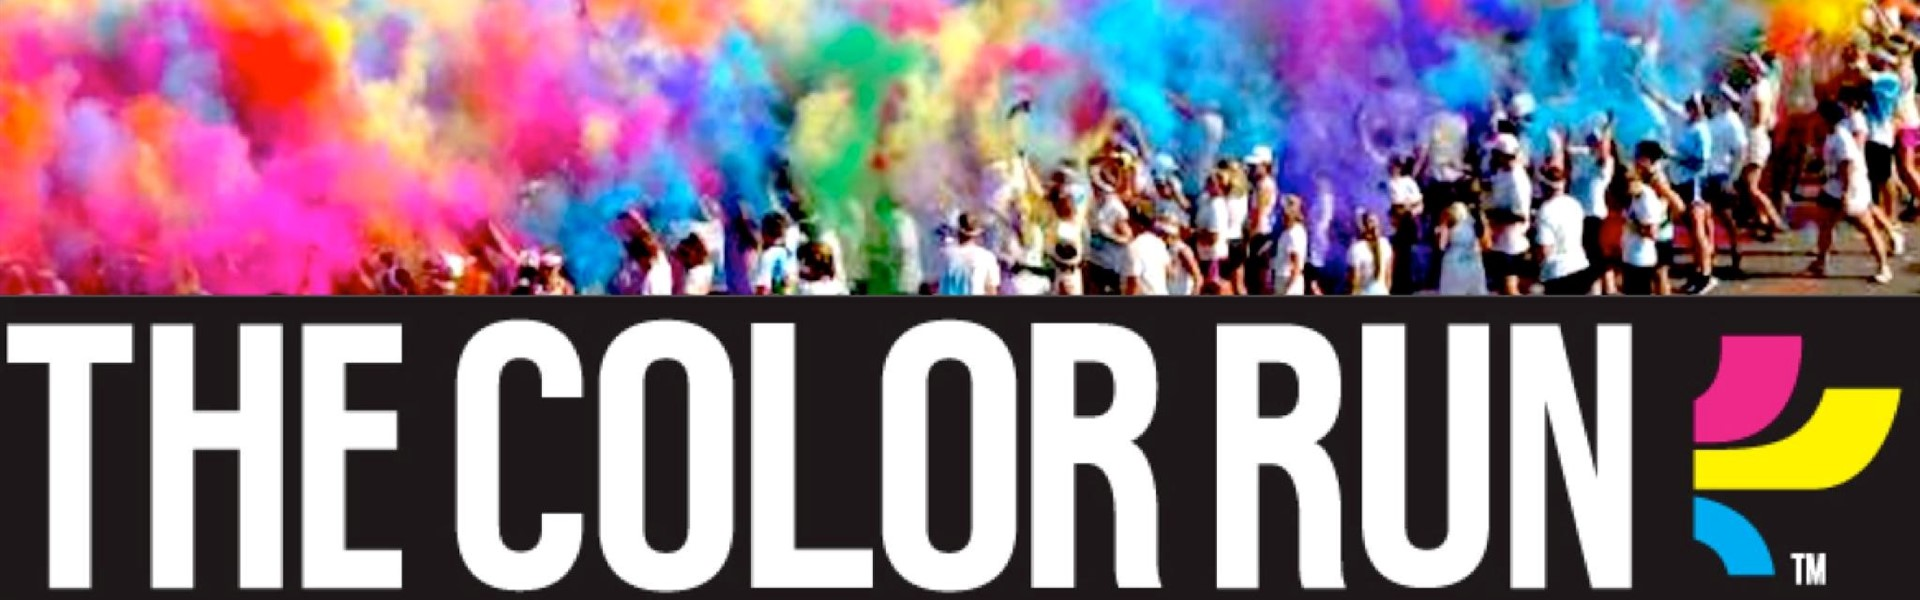 REGISTER FOR THE COLOR RUN